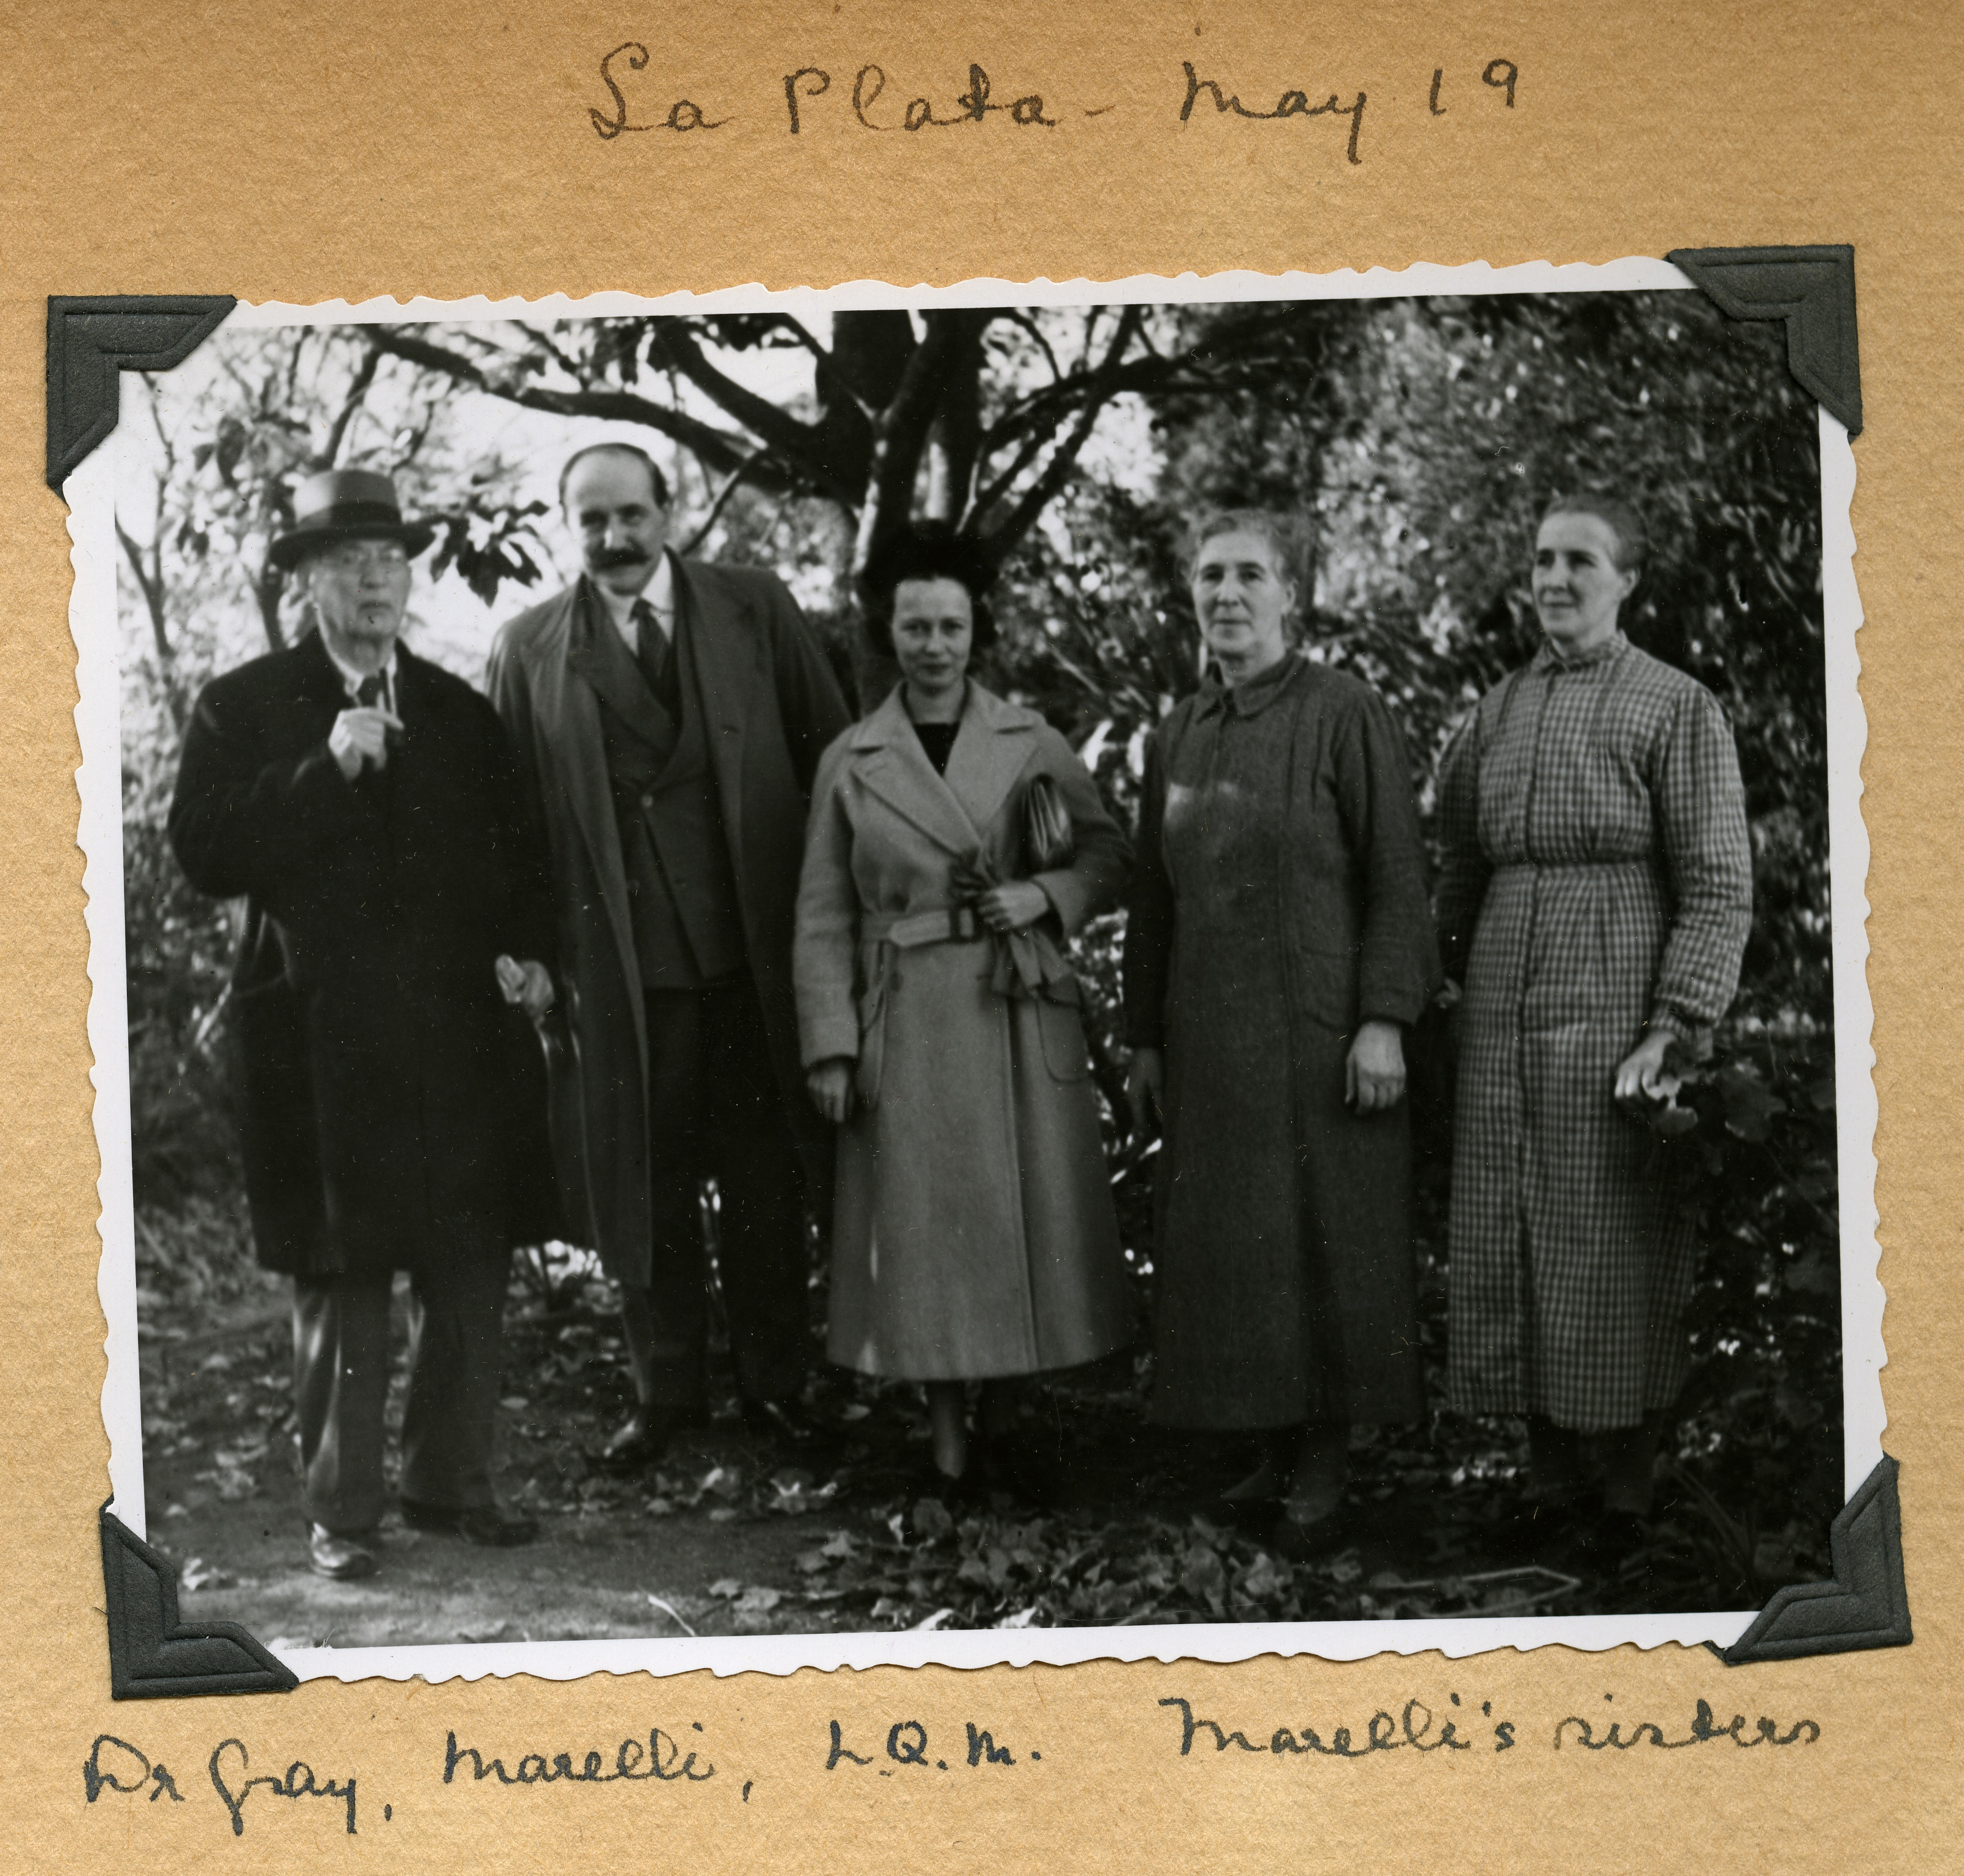 Image in a scrapbook of a group standing outdoors but dressed fairly formally. There are three women